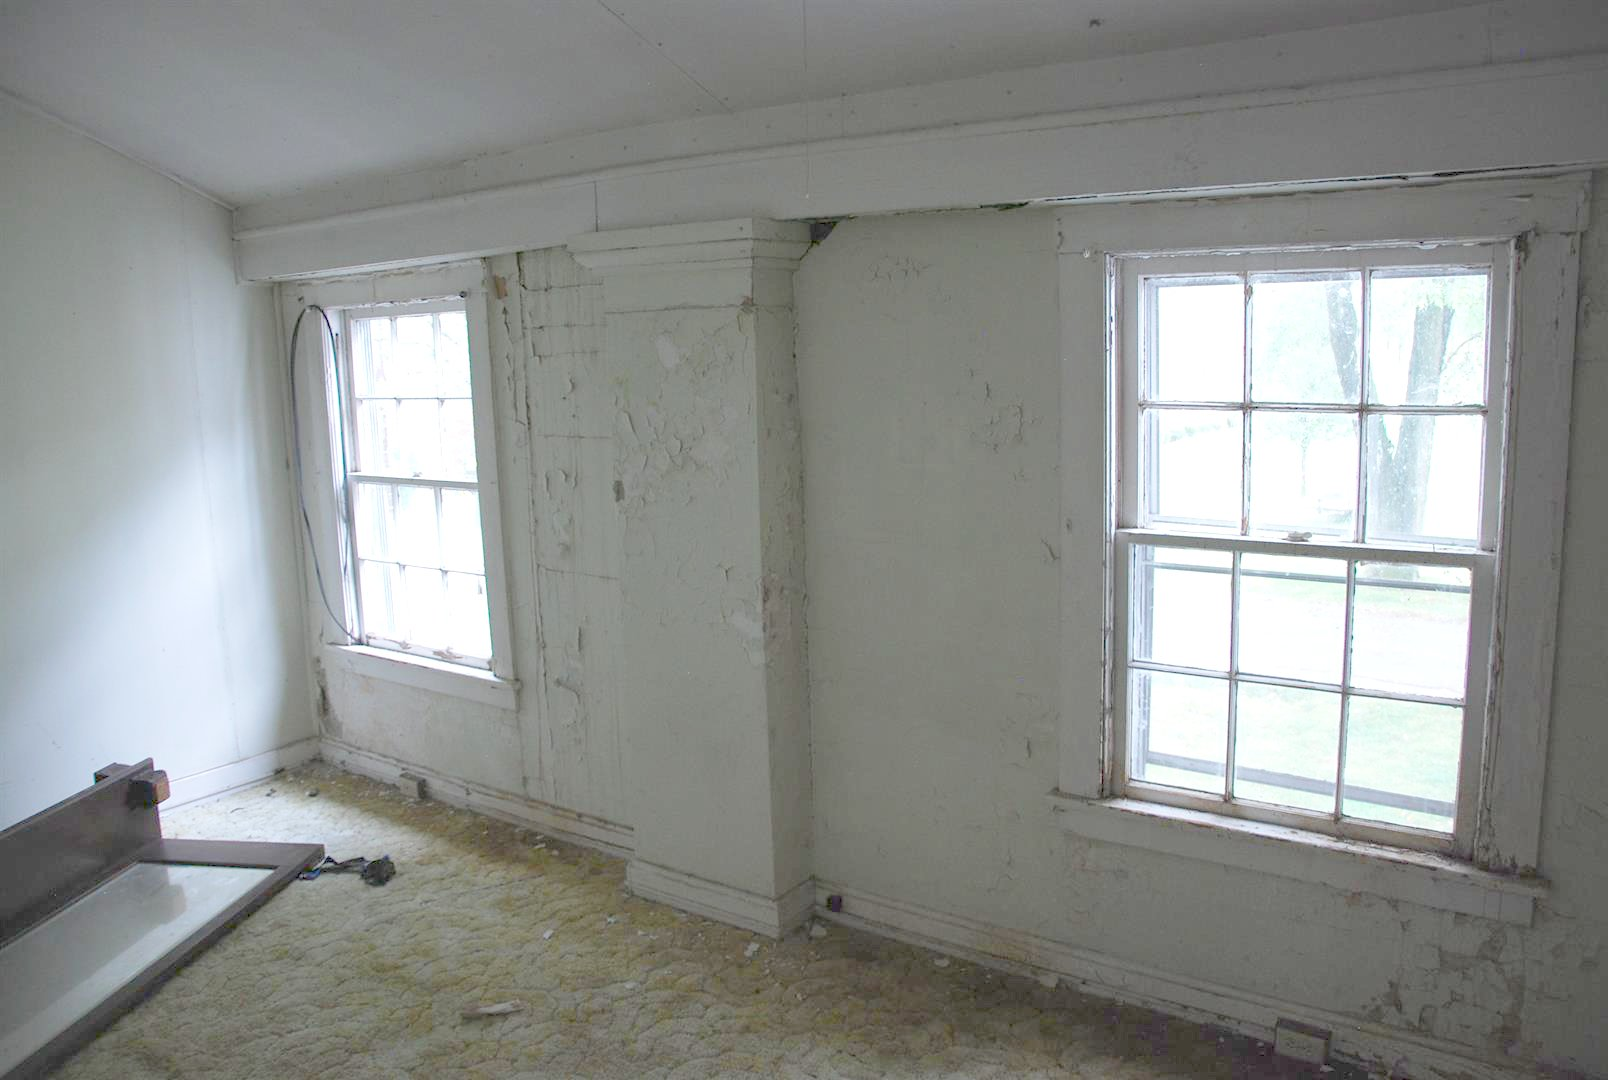 Added Wall construction and windows Between Support Columns at Second Floor to enclose Sleeping Porch)